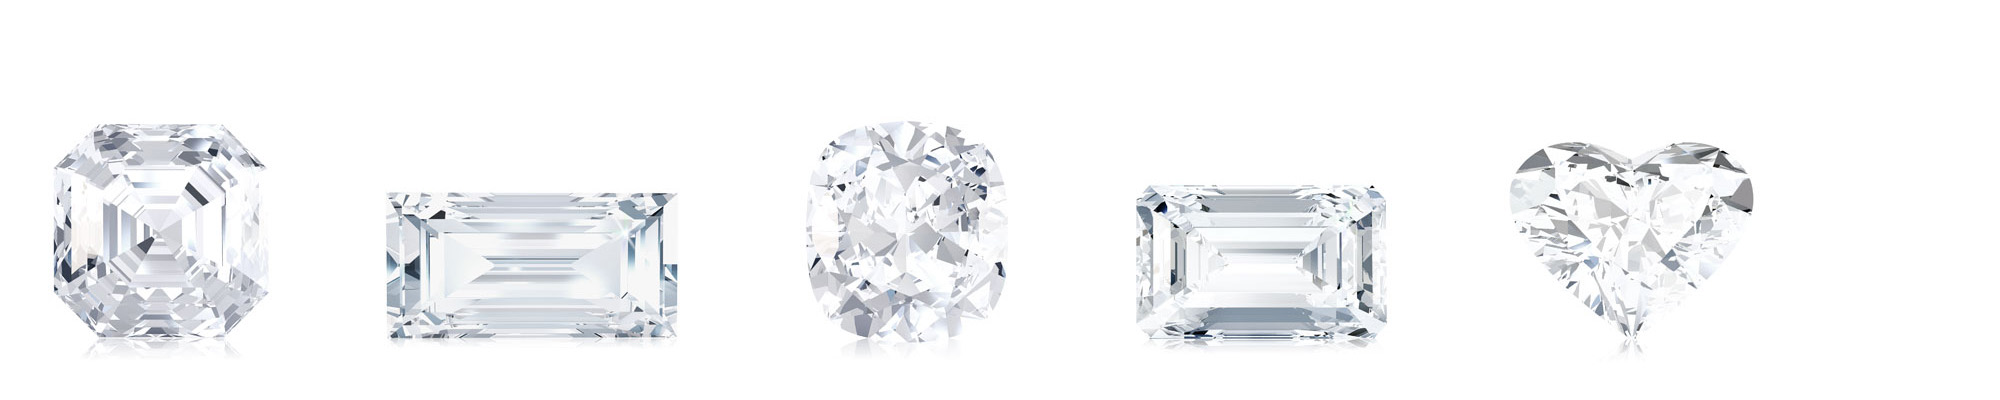 Diamond Shapes_1002.jpg